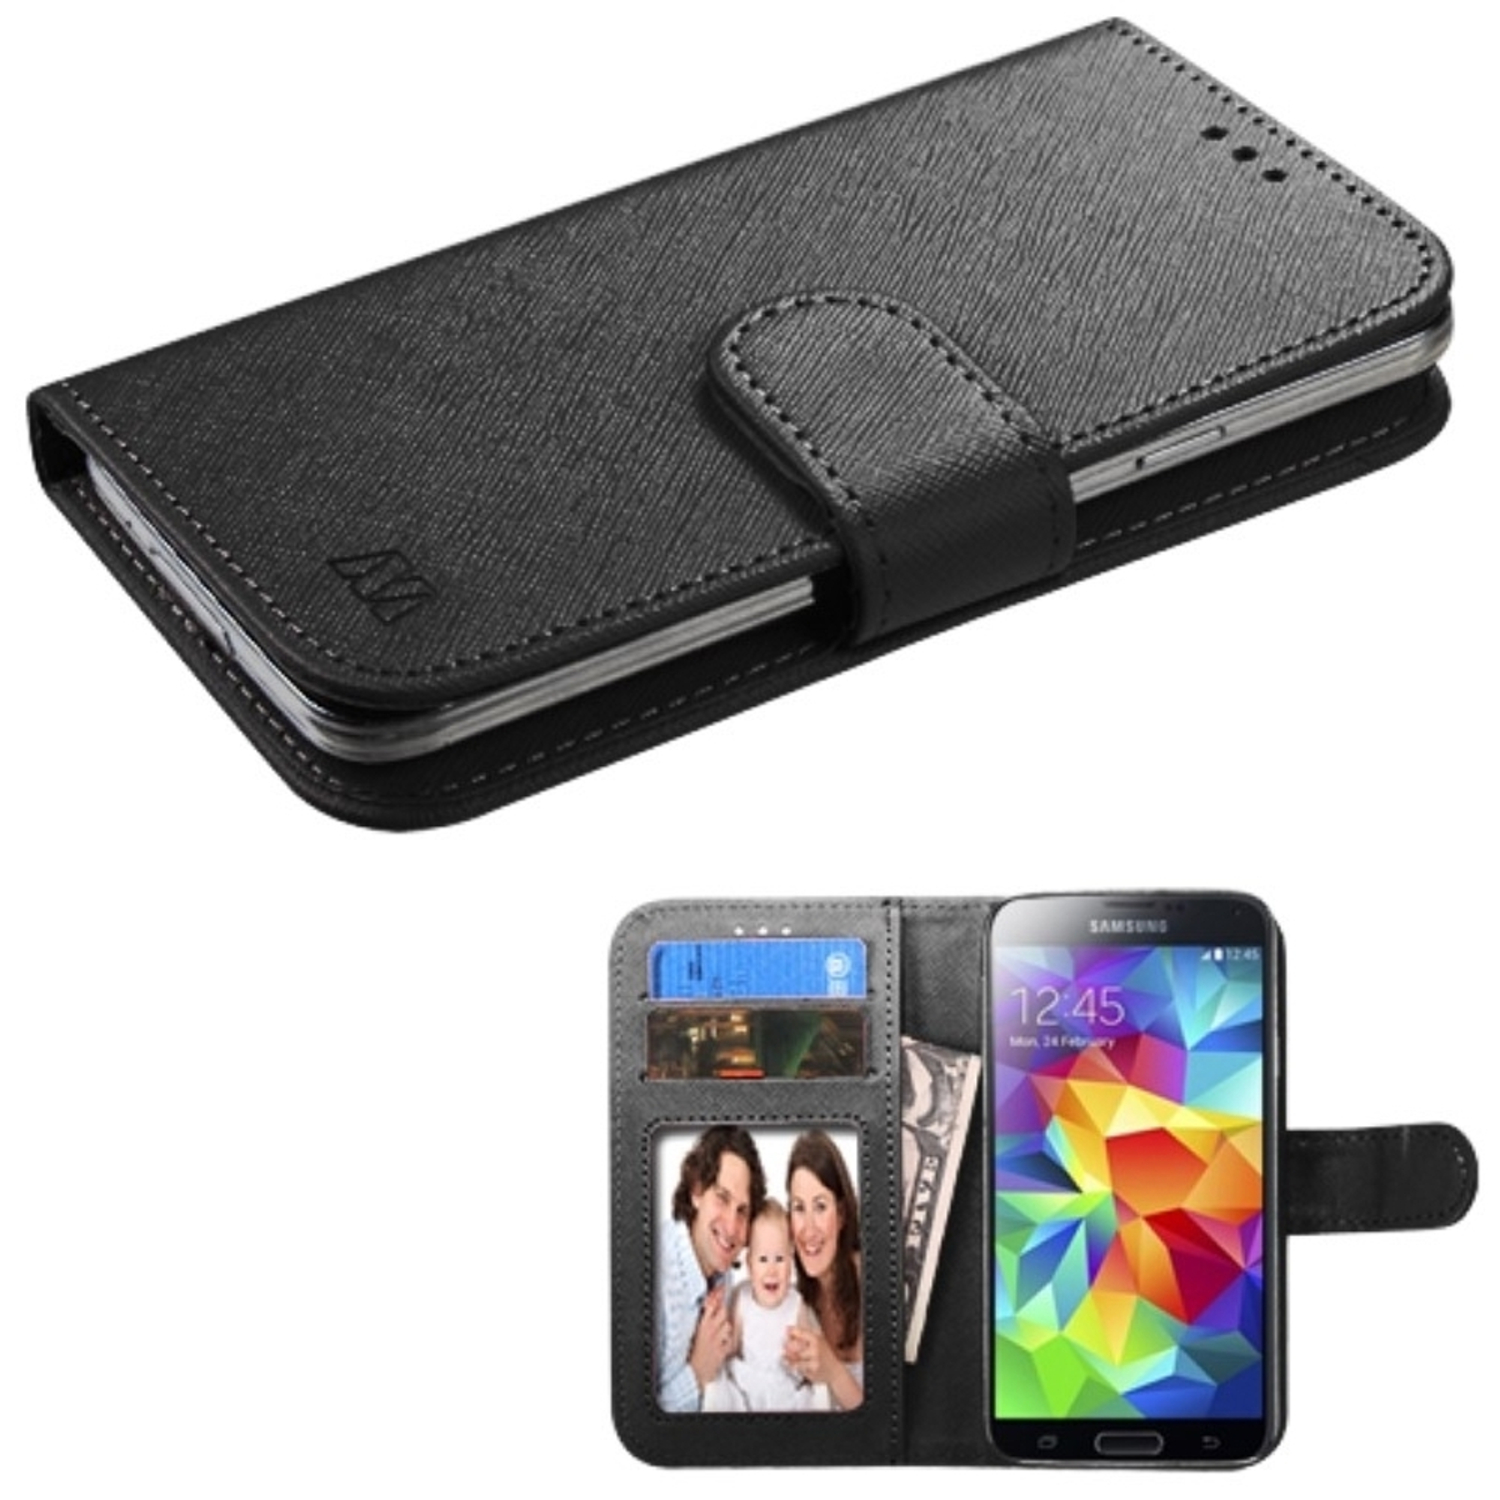 Insten Black Leather Wallet Case For iPhone SE 5 5C 5S/iPod Touch 6th 5th/Samsung J1 Galaxy Core Prime Amp 2/ZTE Maven Overture 2 Fanfare Obsidian Scend Savvy / LG Optimus Zone 3 Leon Sunset Universal